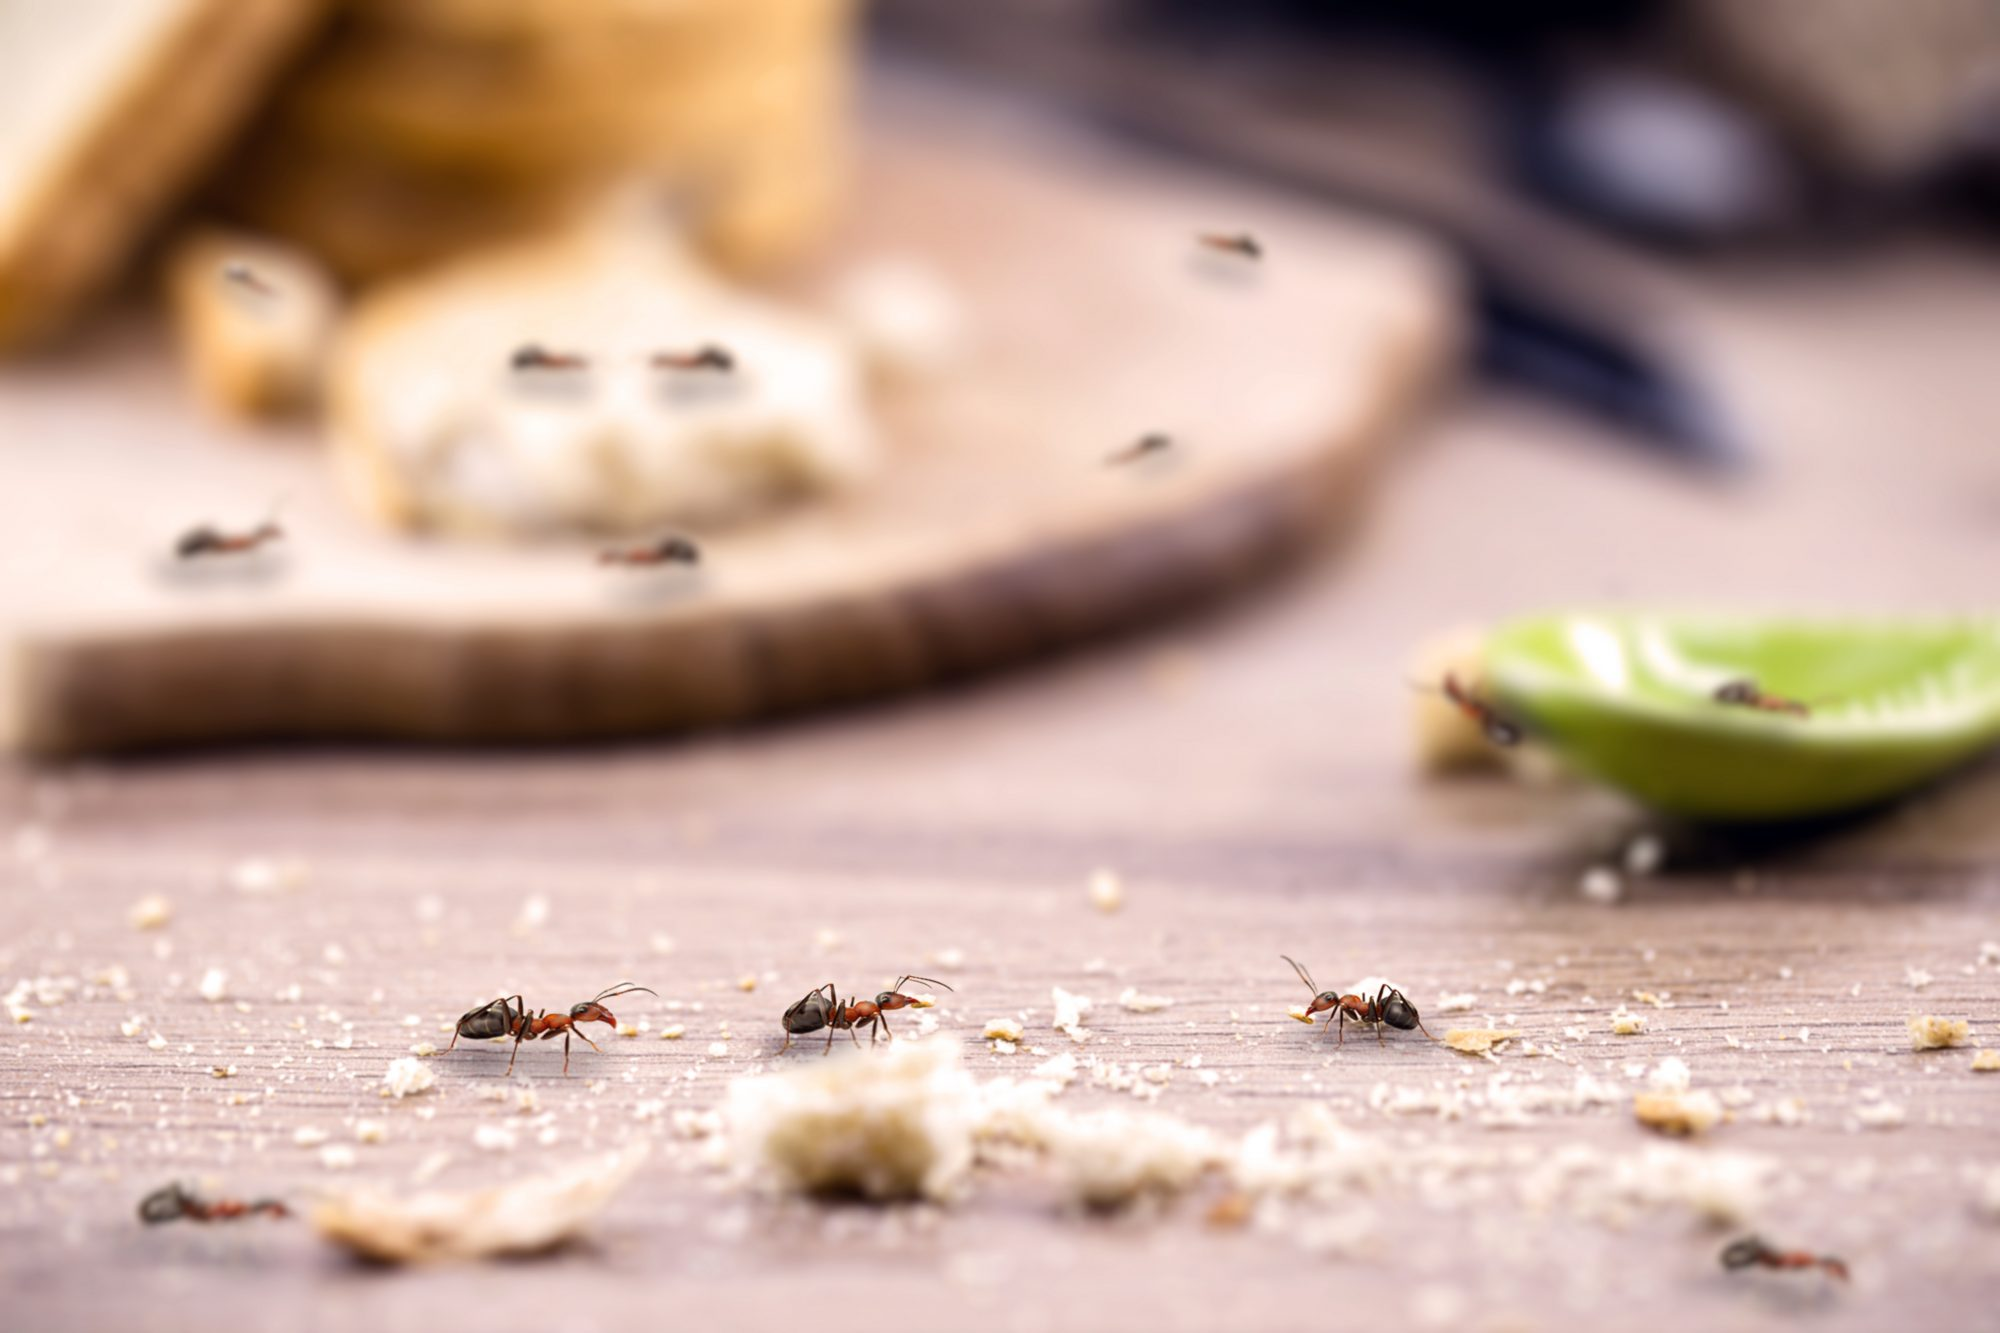 Ants in the Kitchen